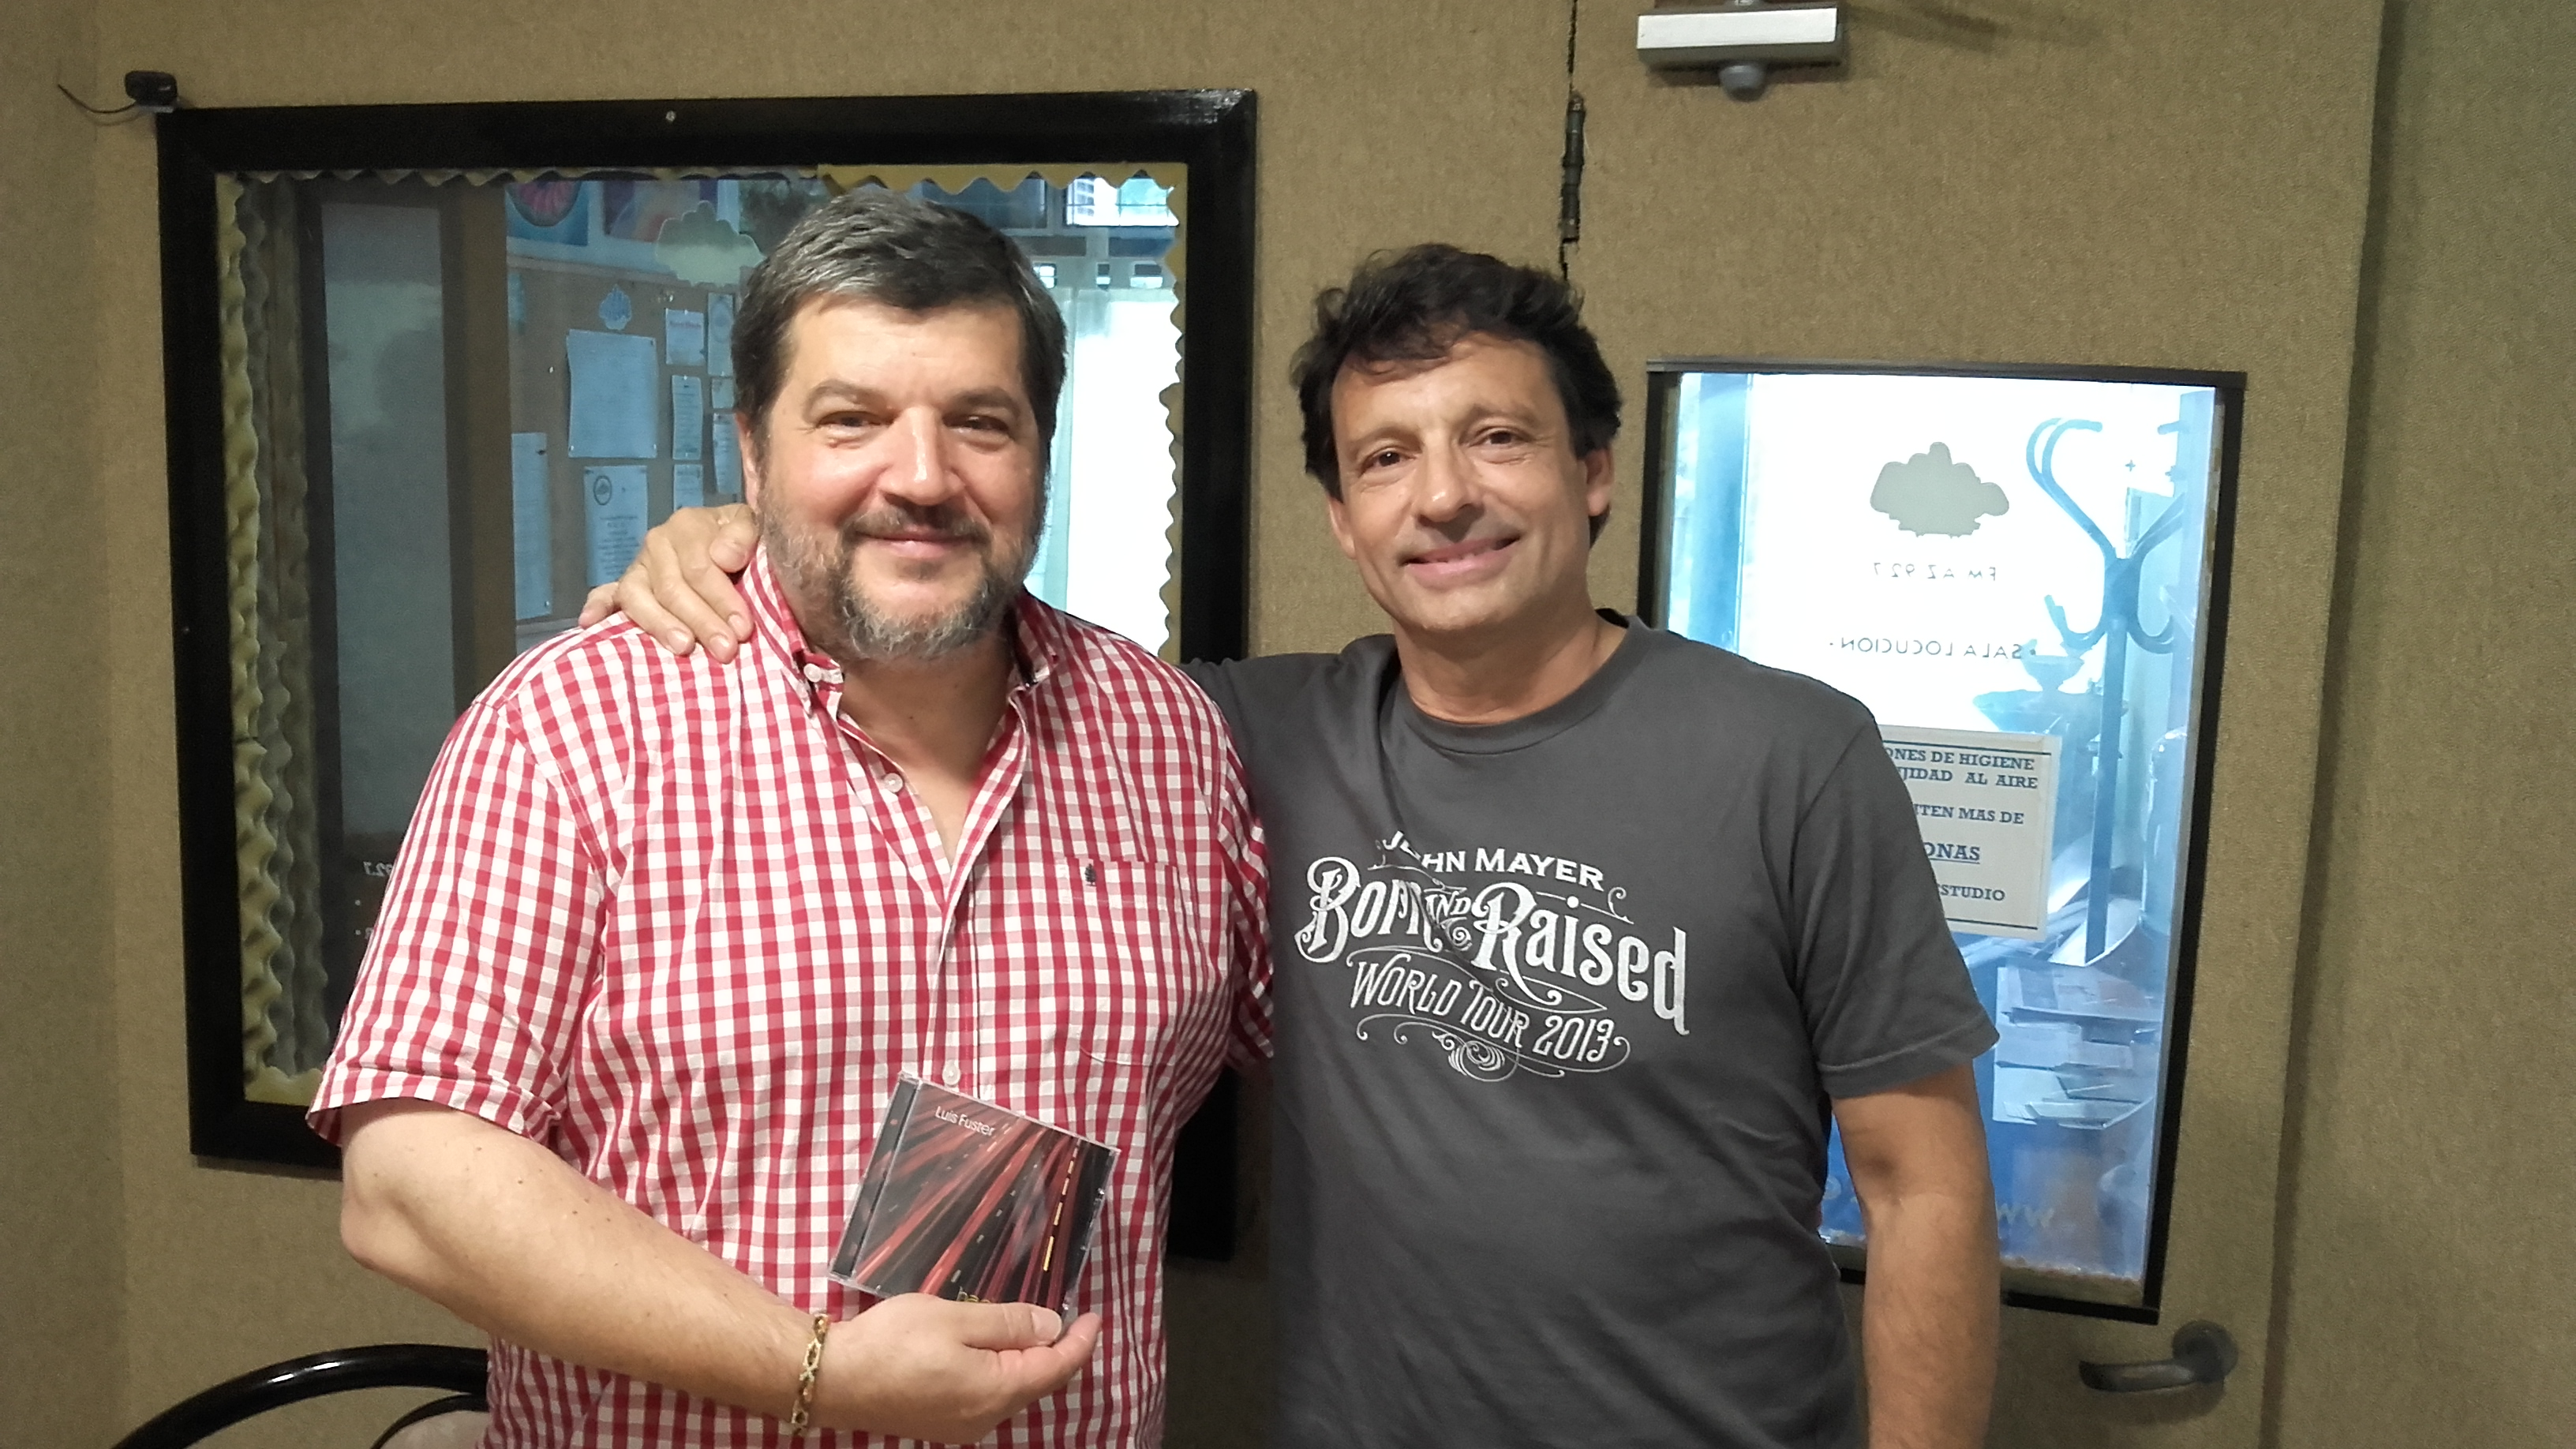 Luis Fuster